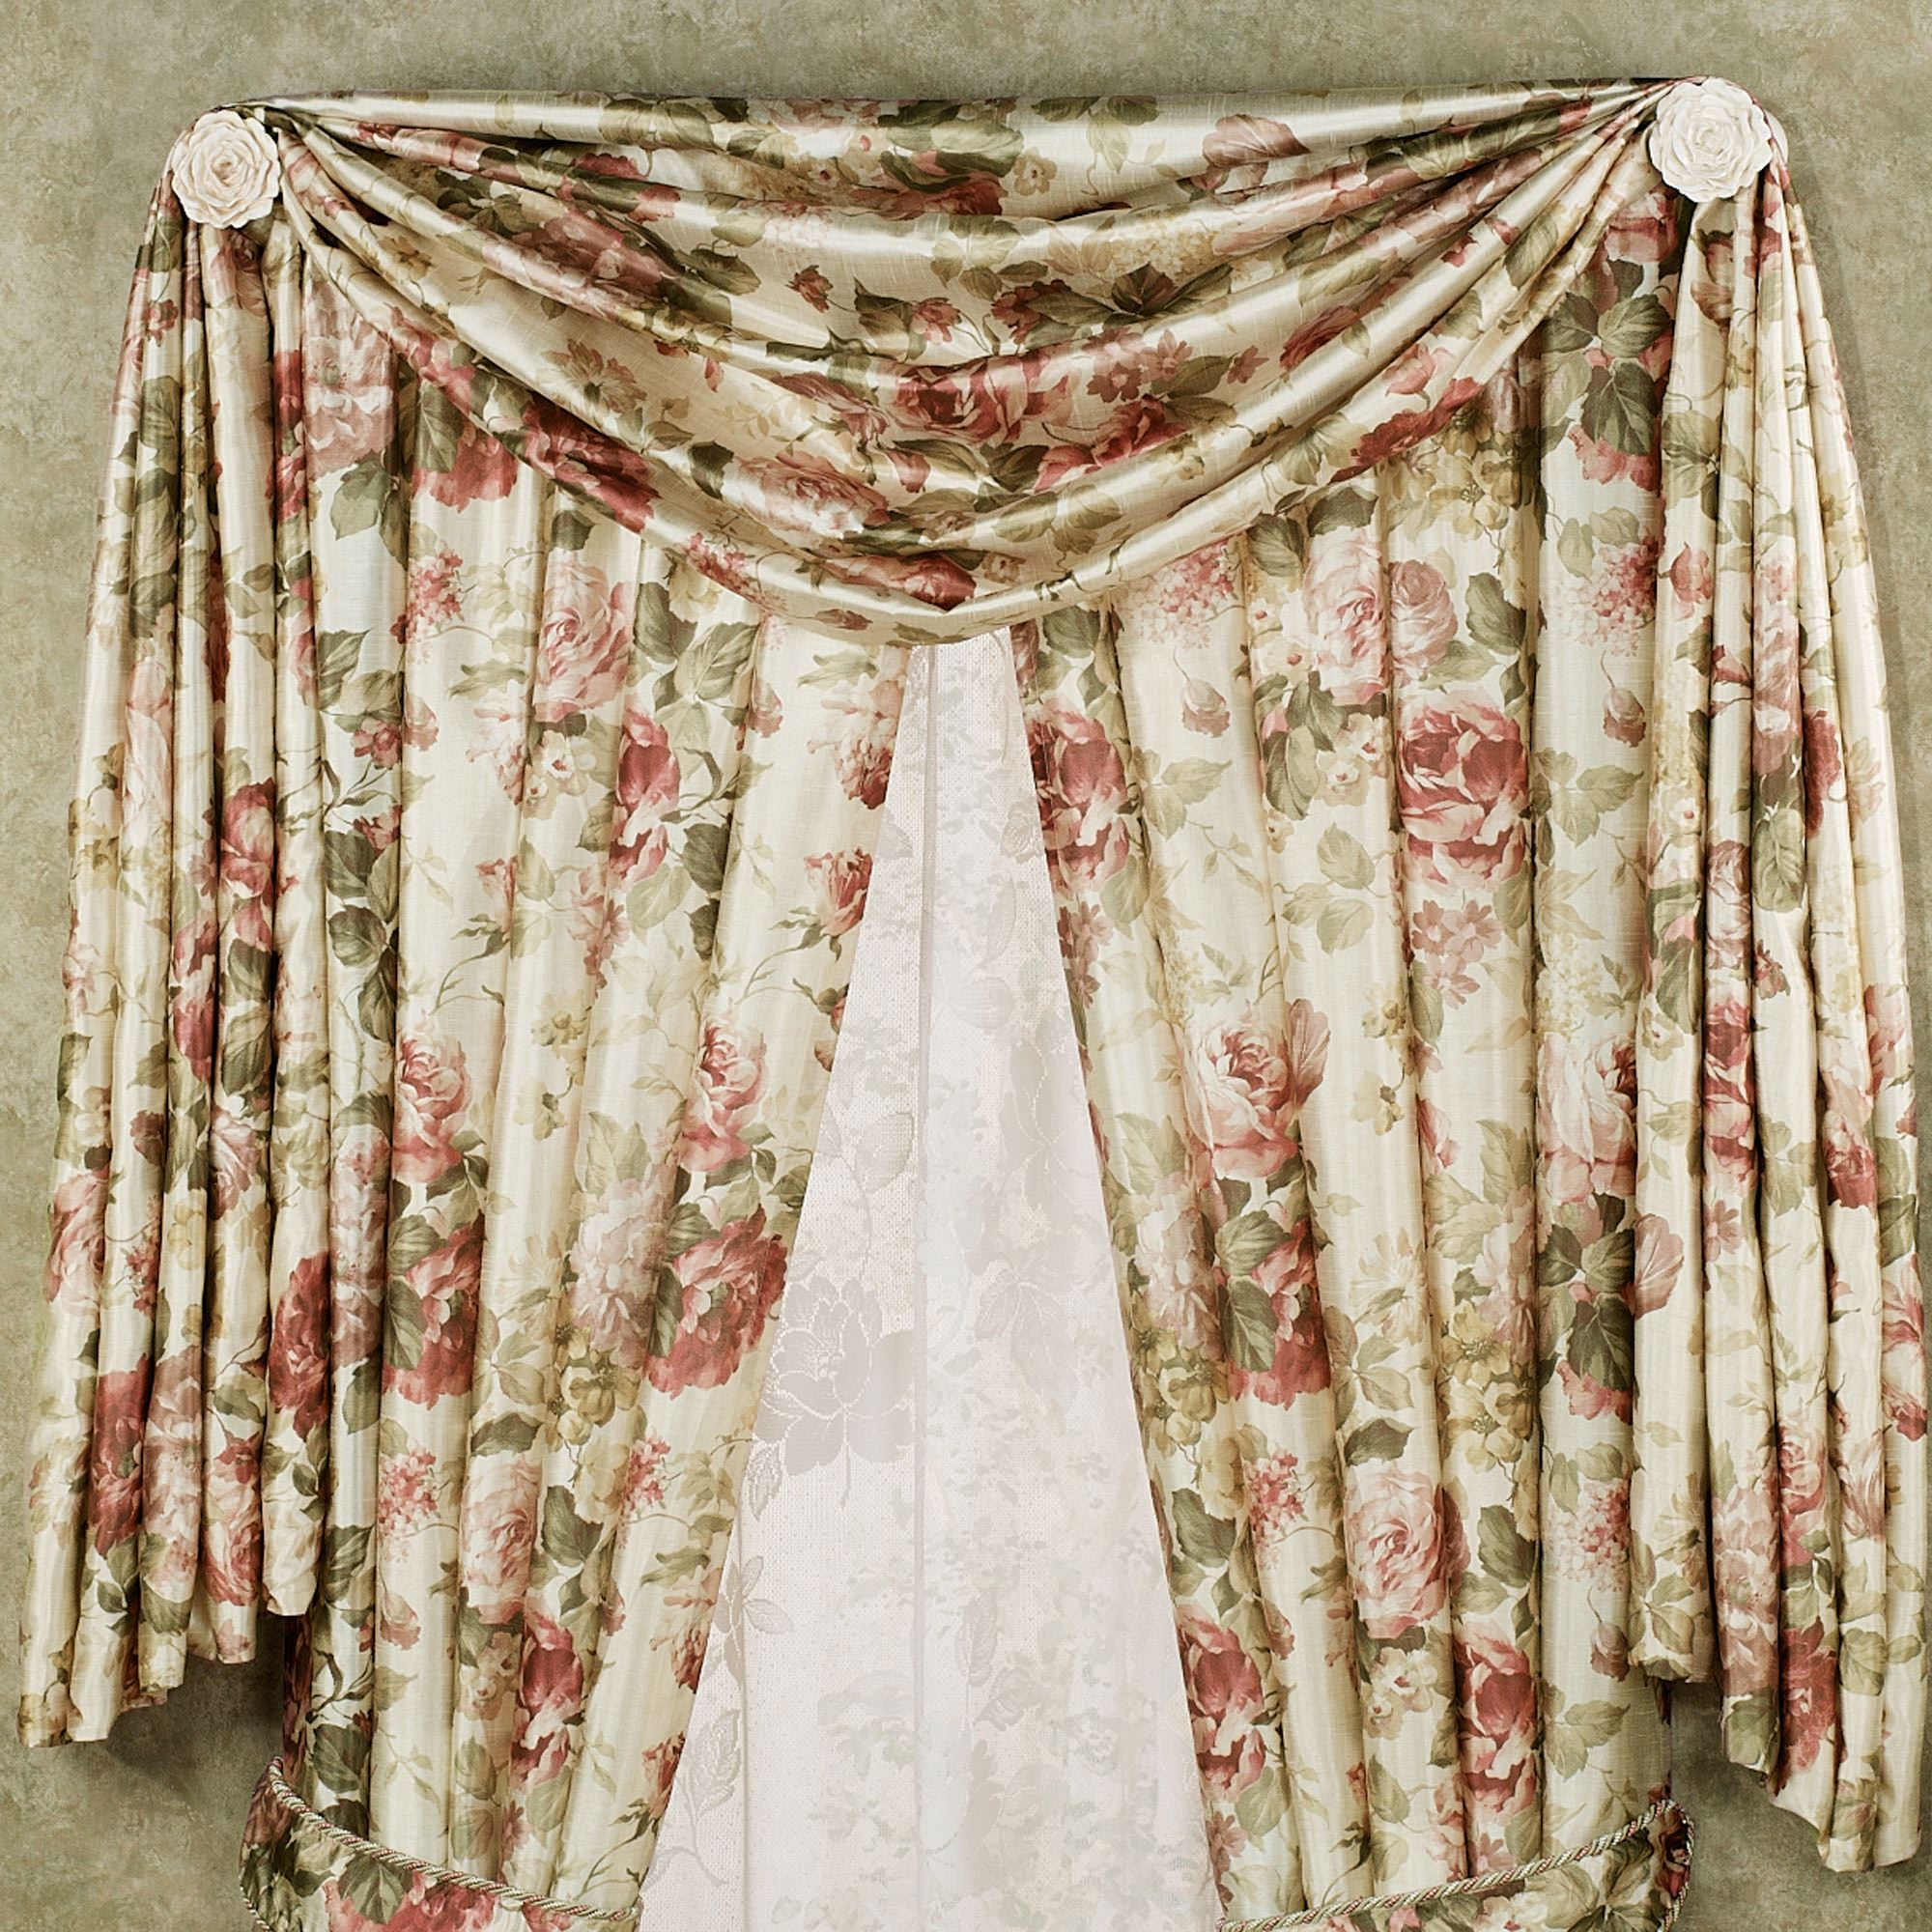 garden orders home on window overstock scarf sheer product valance shipping over free infinity vcny